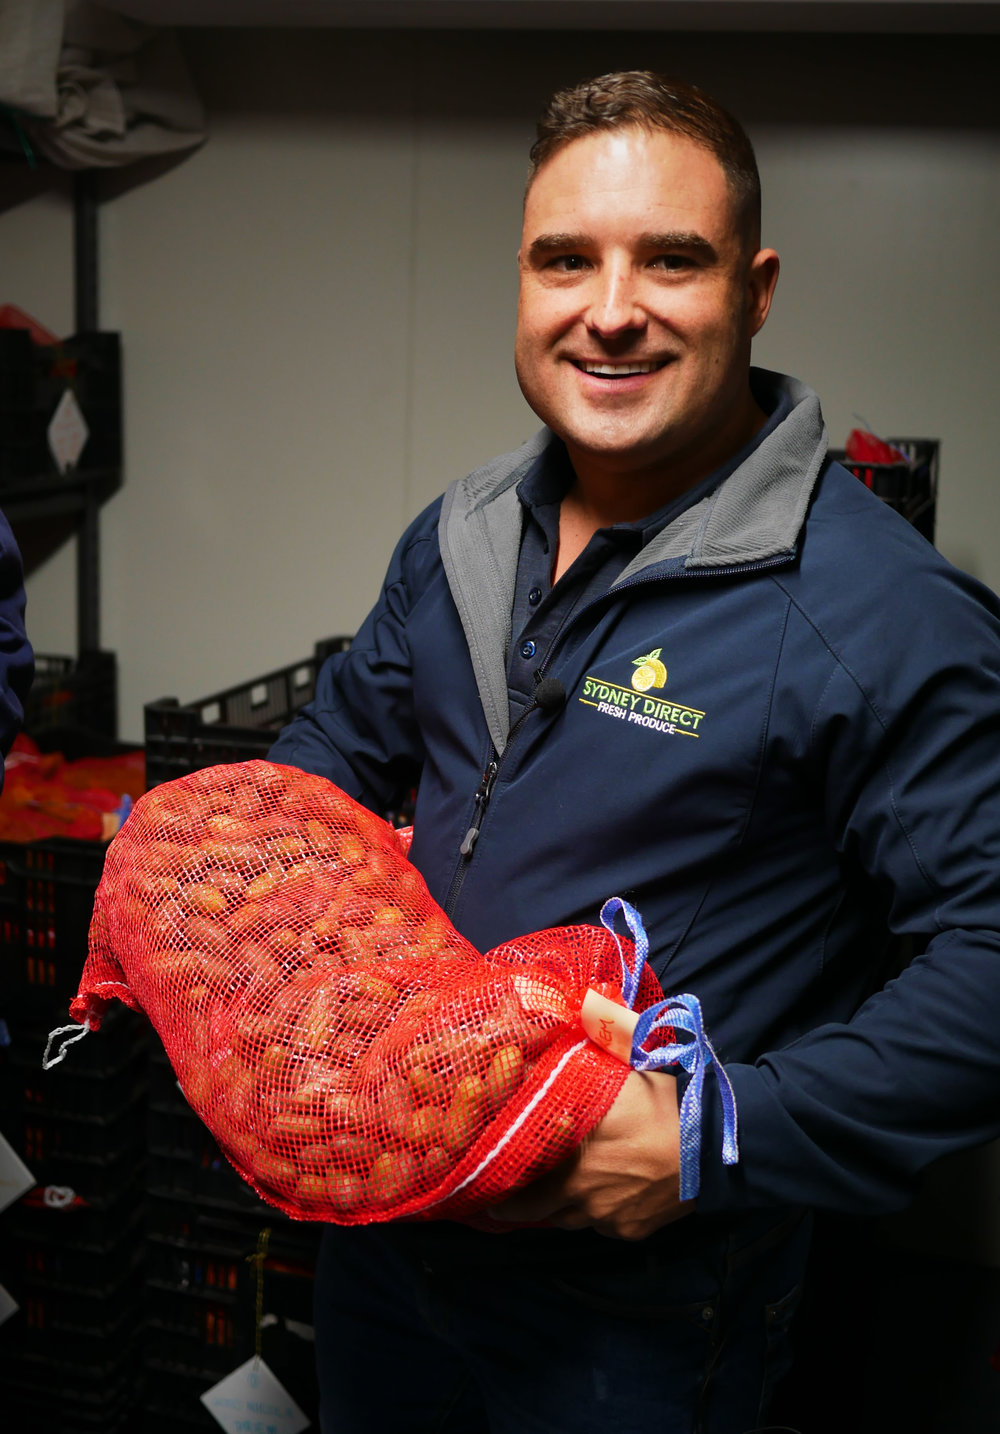 SDFP OWNER LUKE KOHLER HOLDING A PURE BREED POTATO